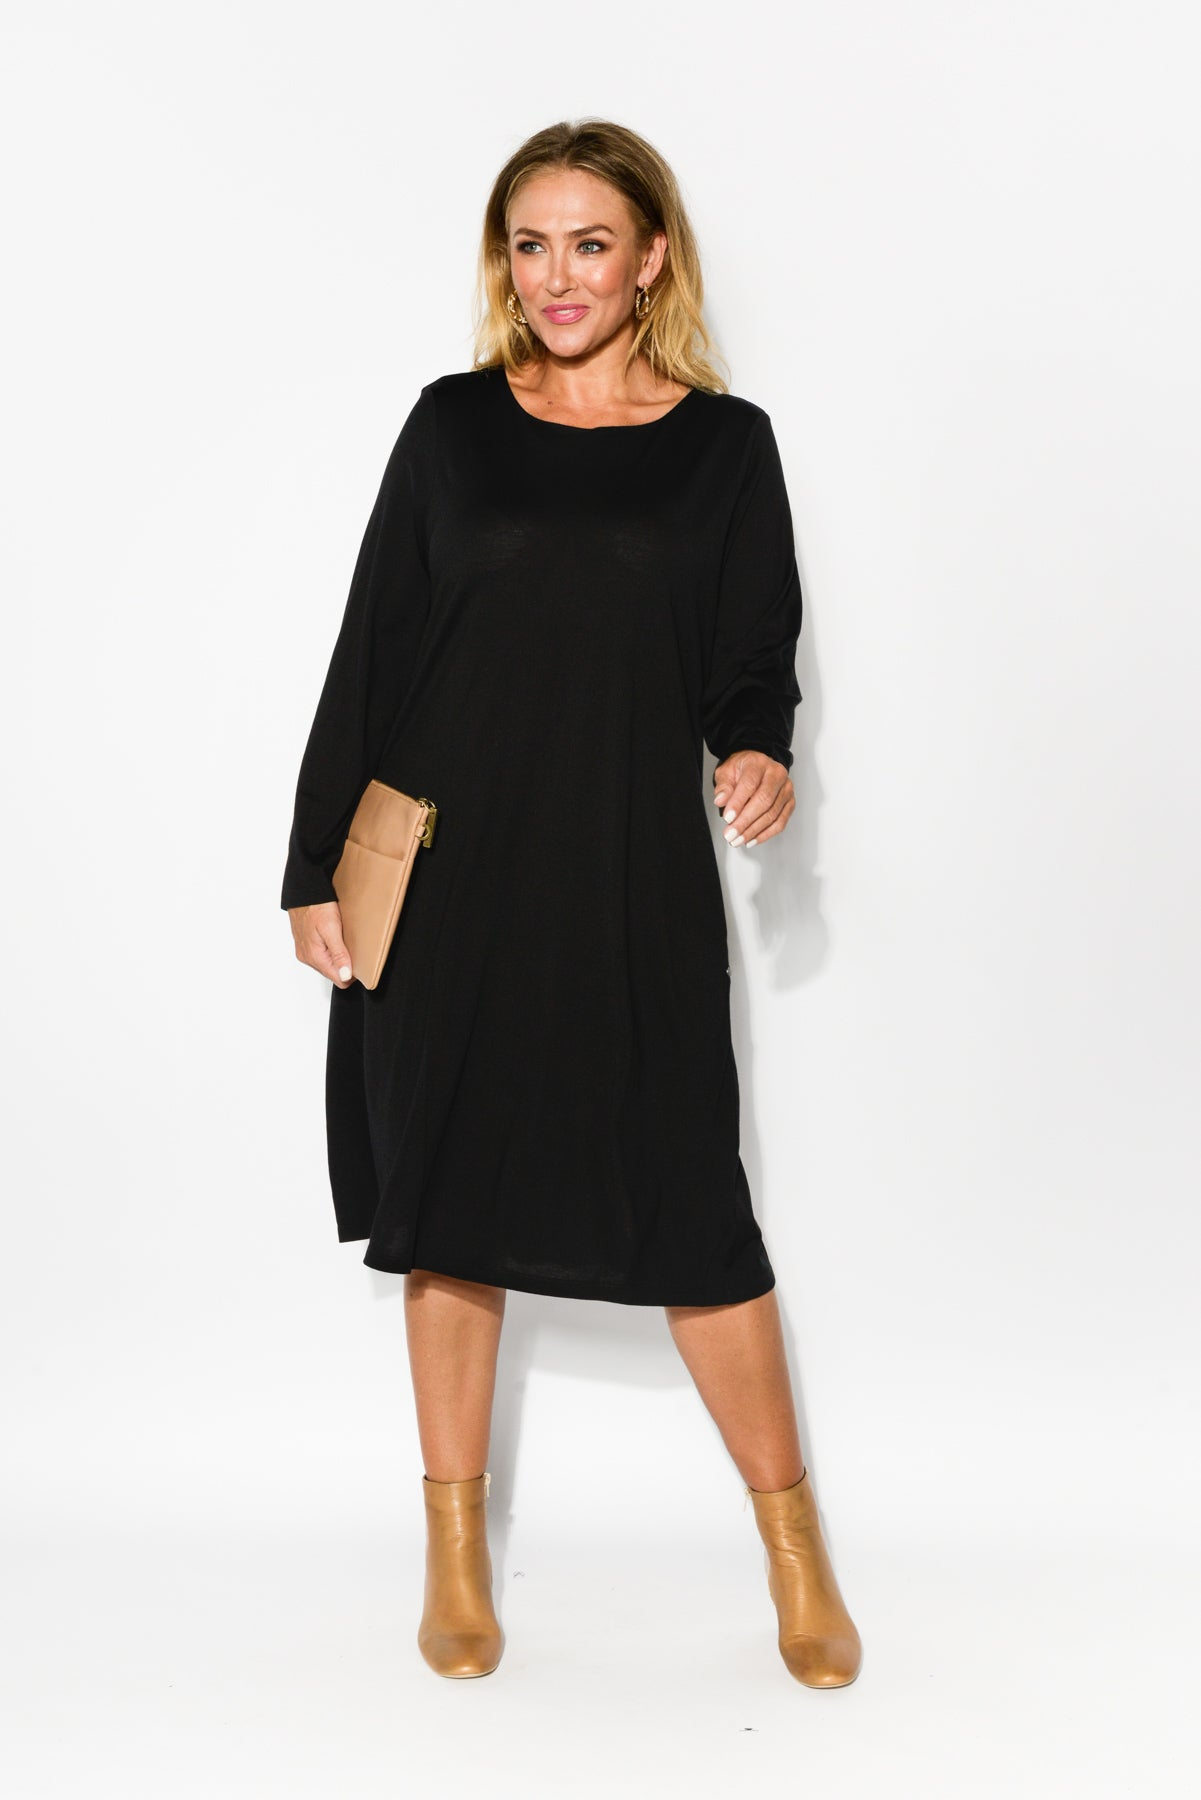 Vanity Black Merino Wool Swing Dress - Blue Bungalow